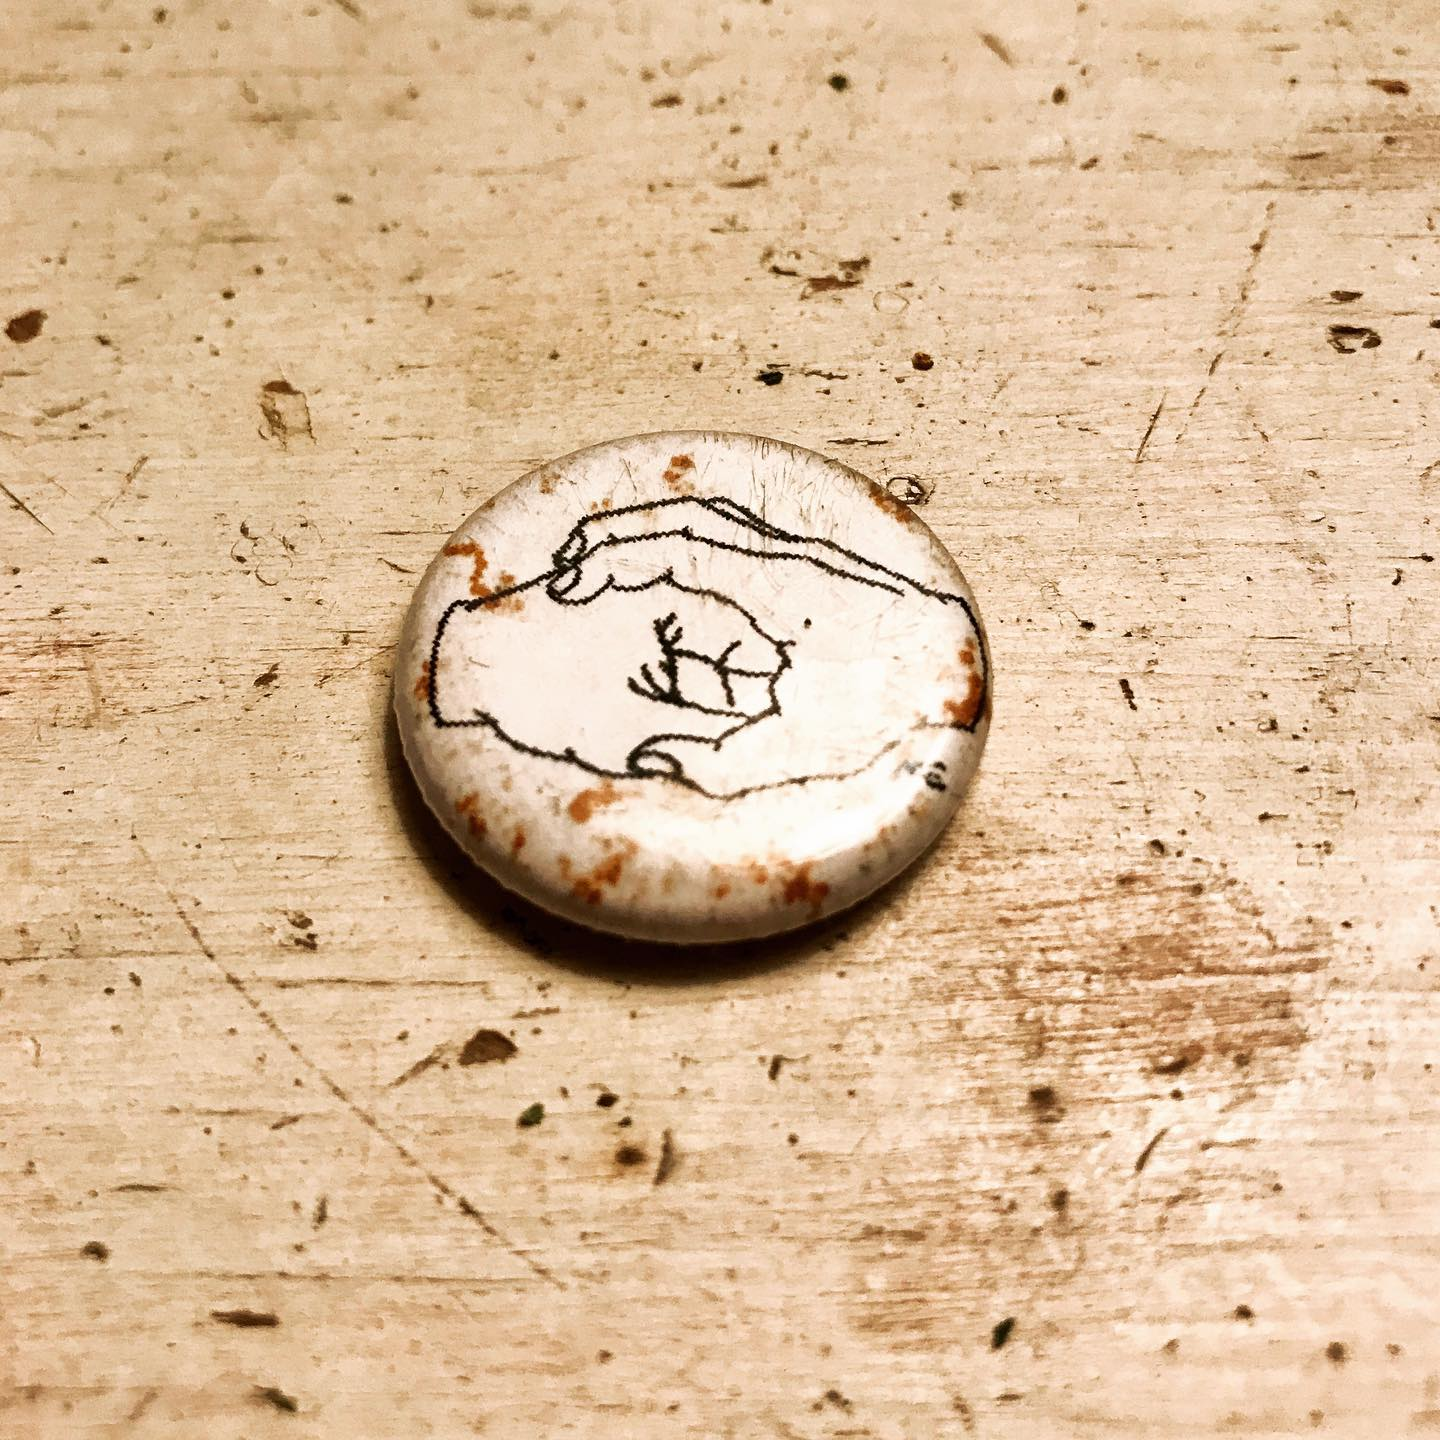 og pin from a few years back - new merch coming soon!